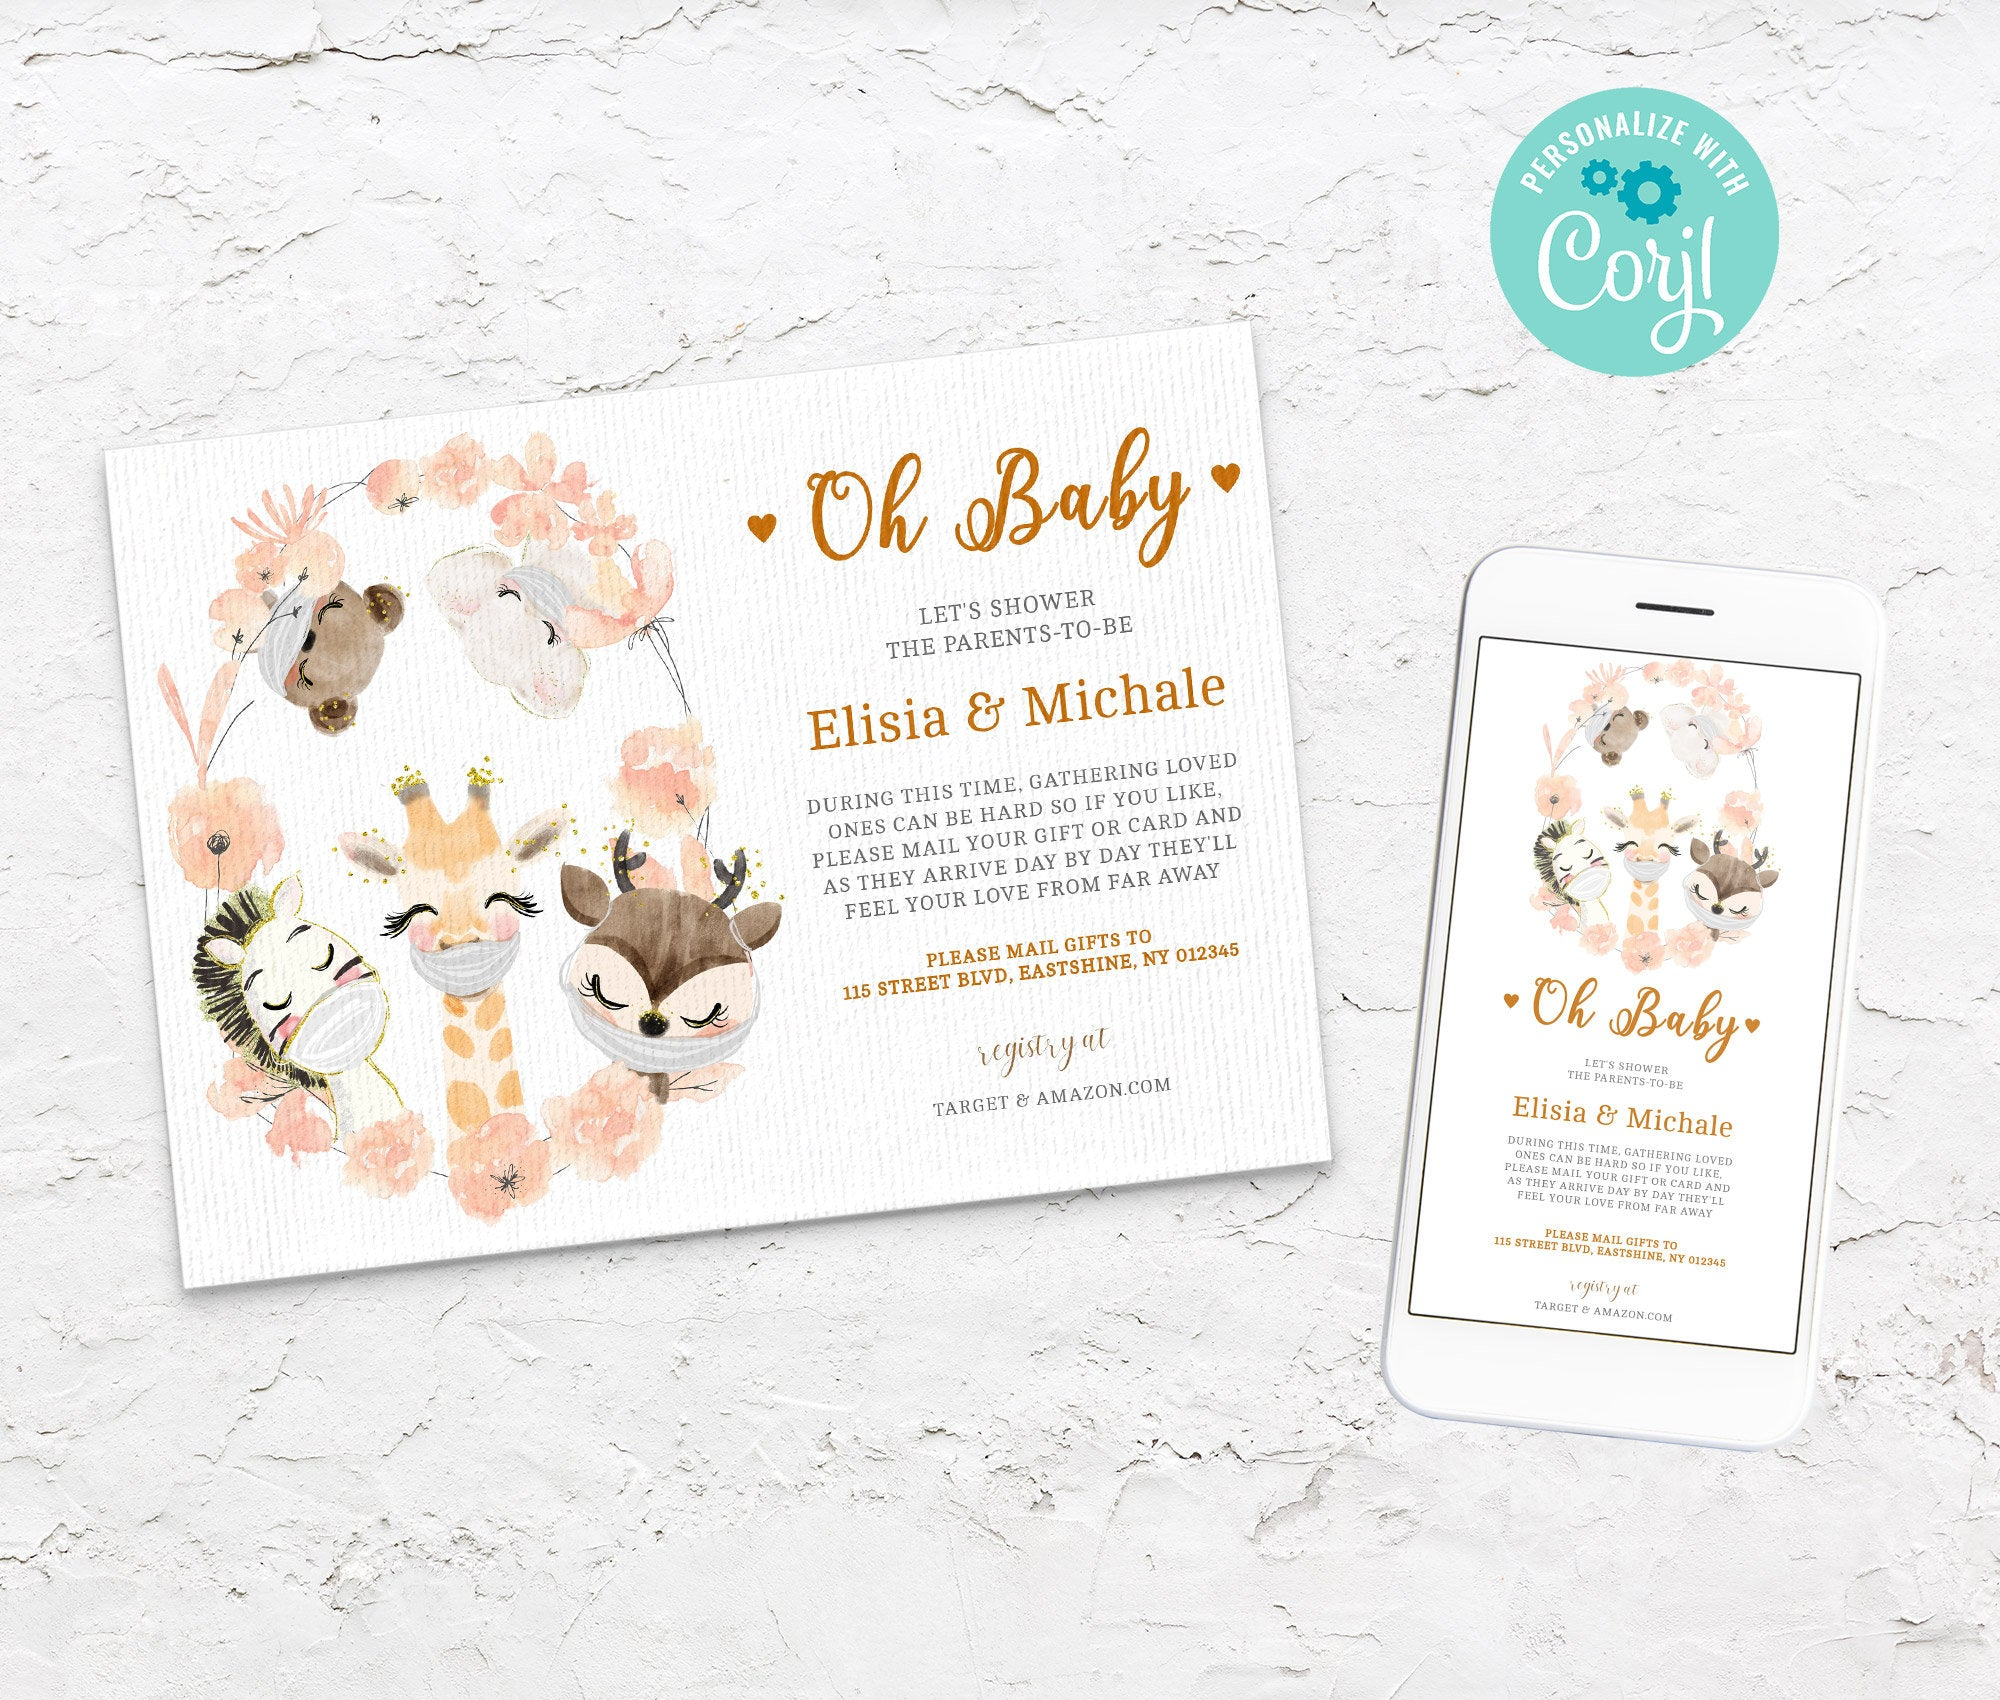 Baby Shower by Mail Template - Animal Baby shower invitation - Shower by Mail, Shower Evite - Editable Text - Instant Download - 3608 BS3601